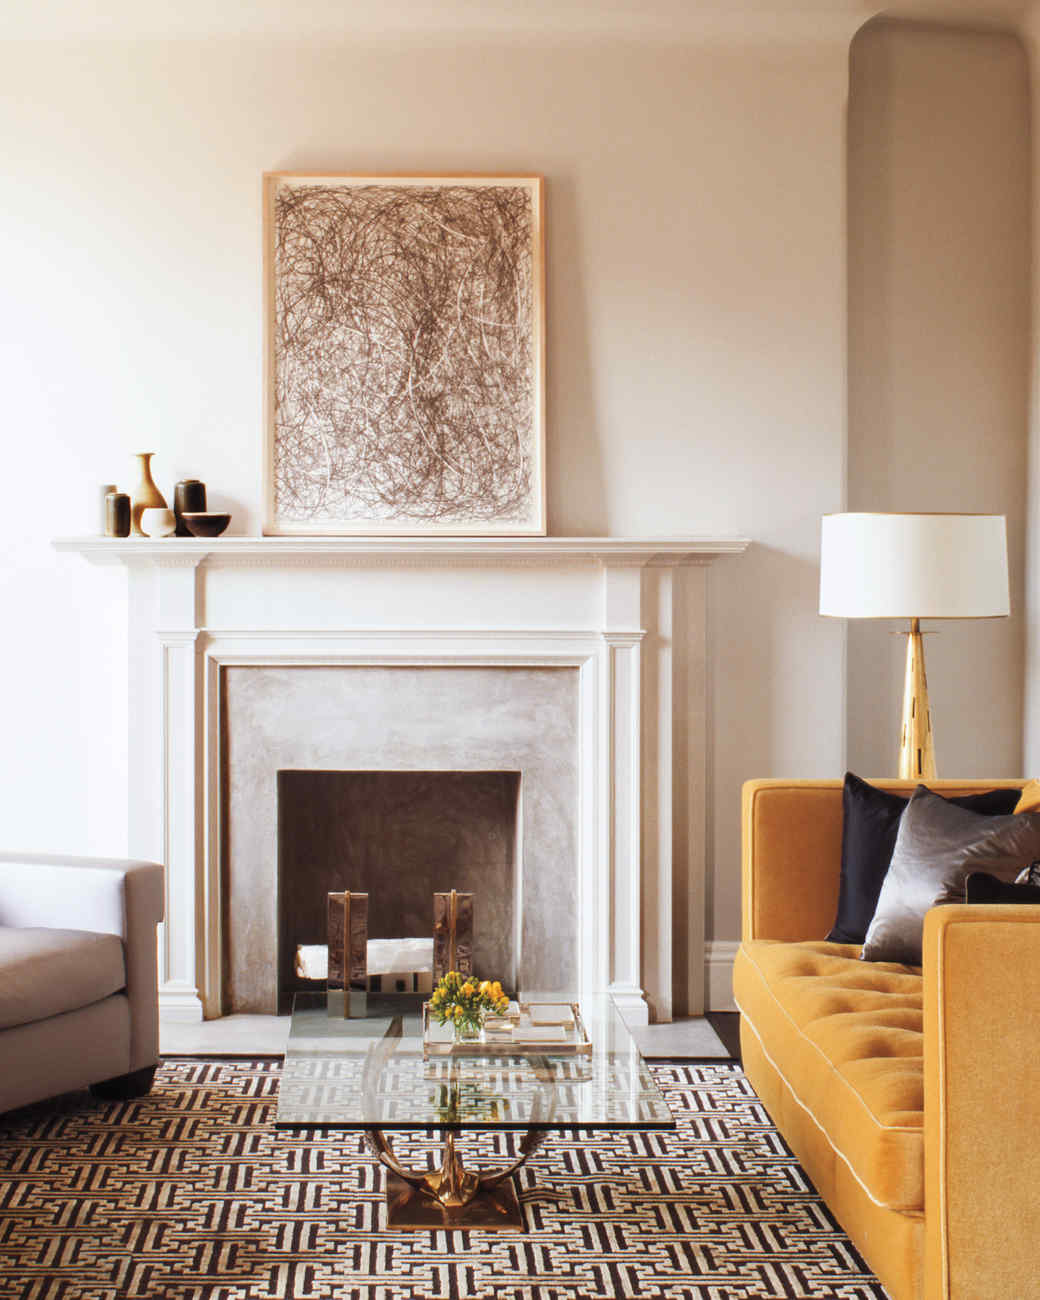 modern-fireplace-interior-gambrel-s112432.jpg